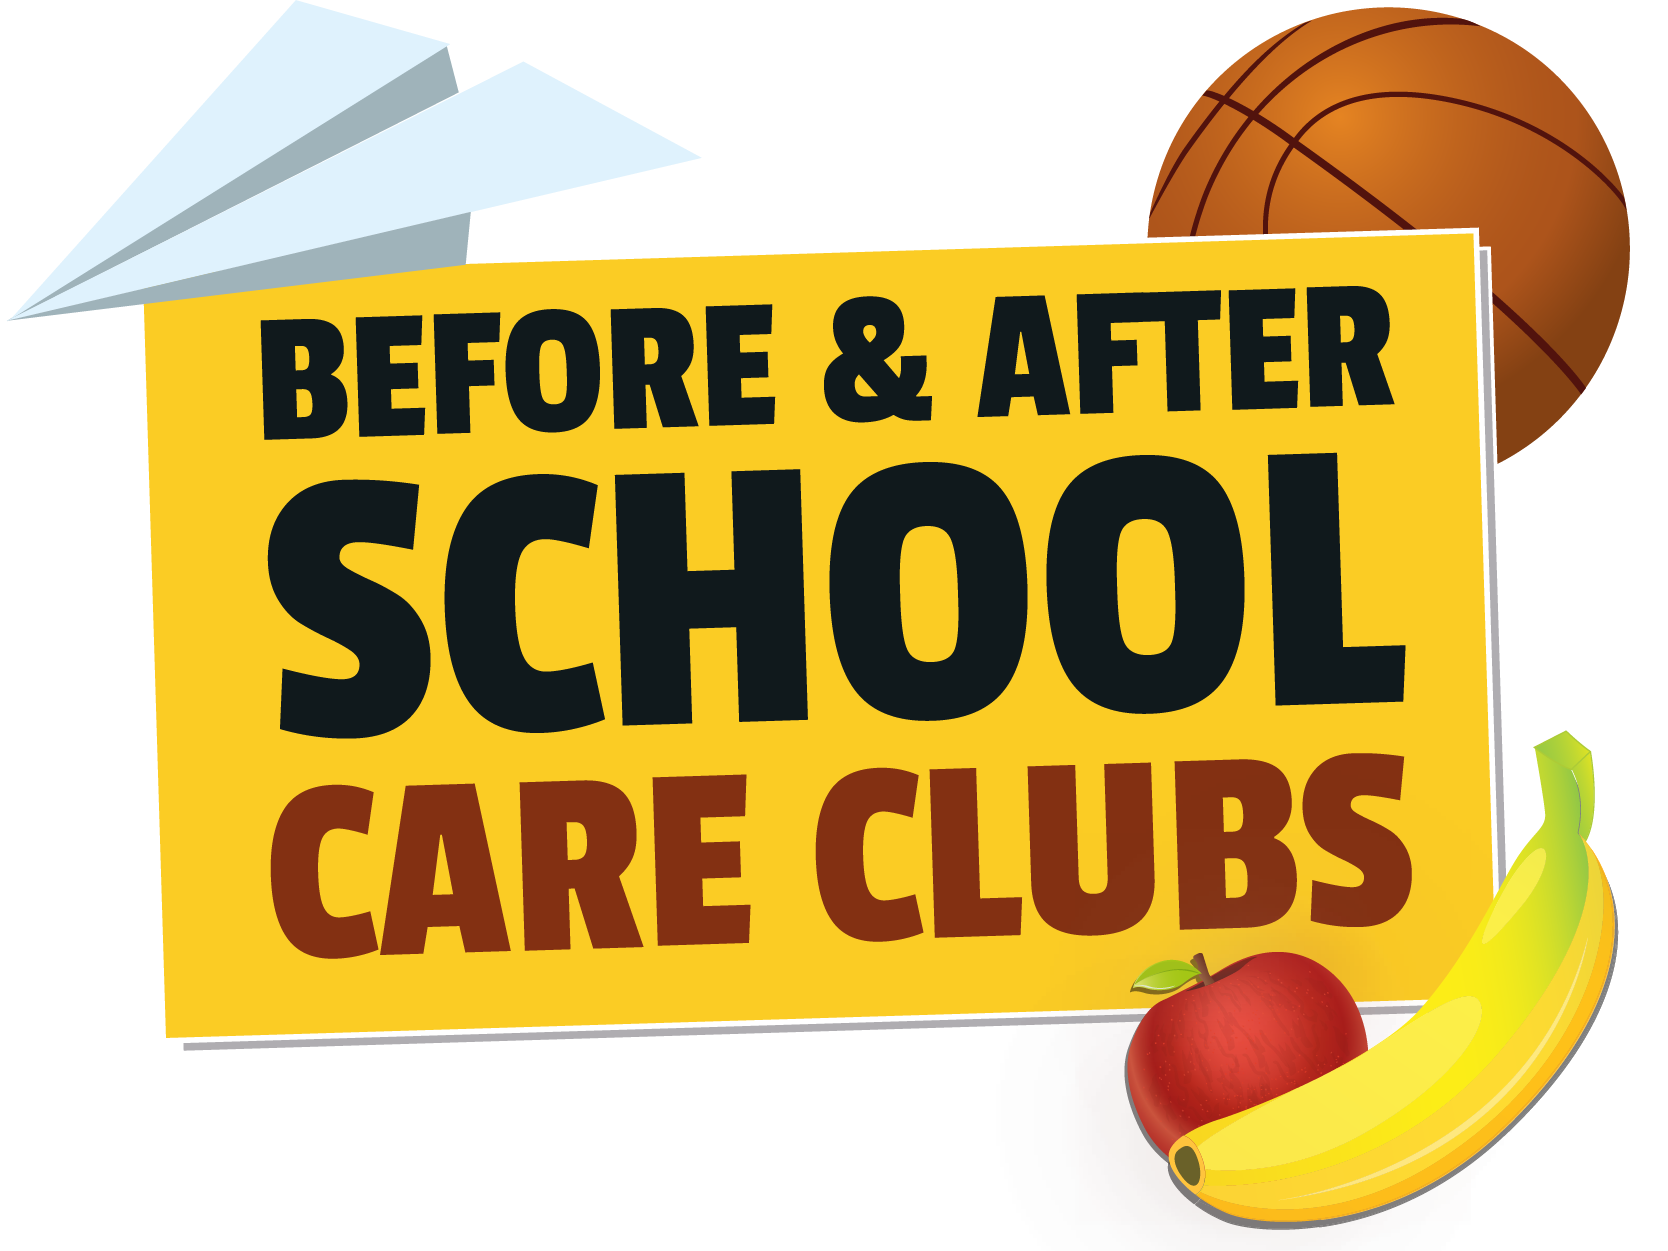 Before & After School Care Clubs